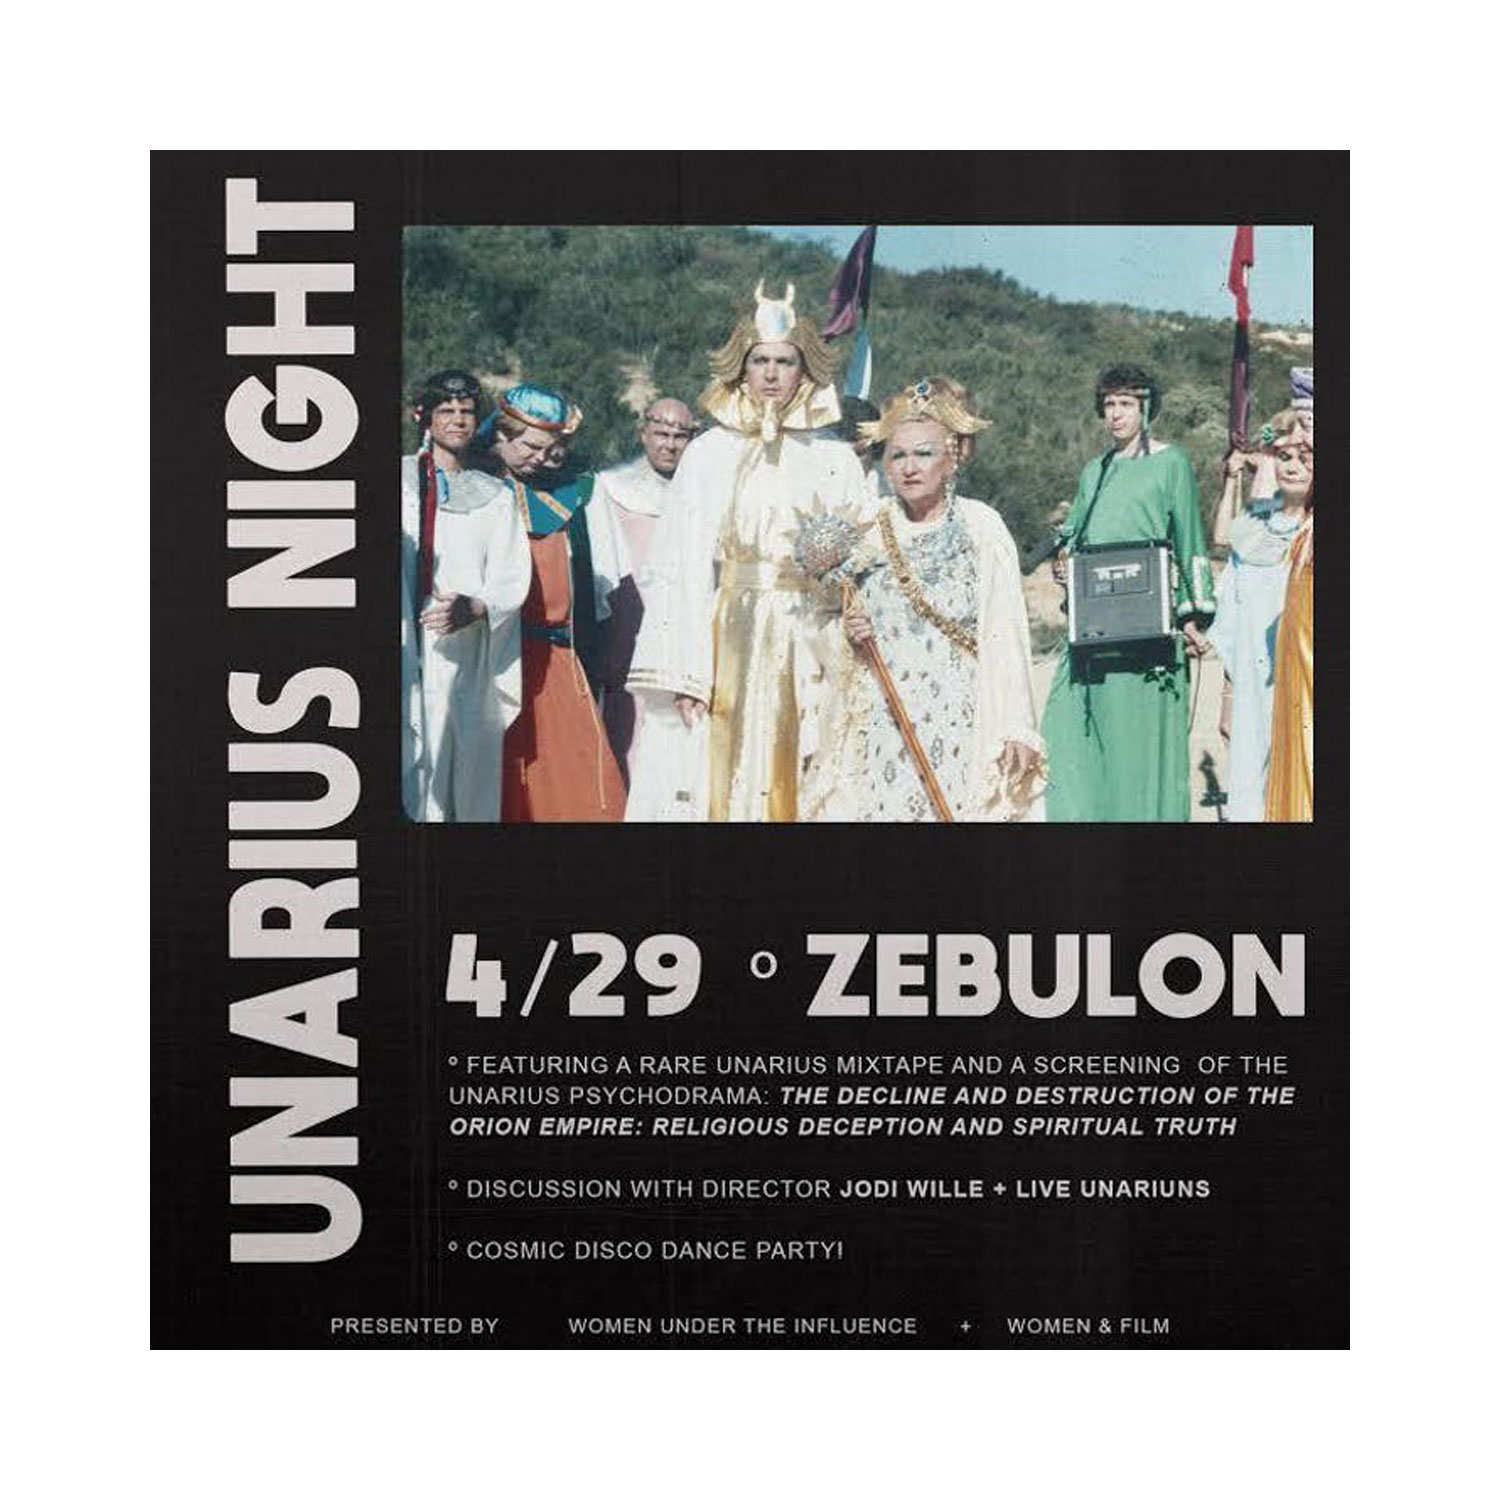 UNARIUS NIGHT! BY WOMEN AND FILM